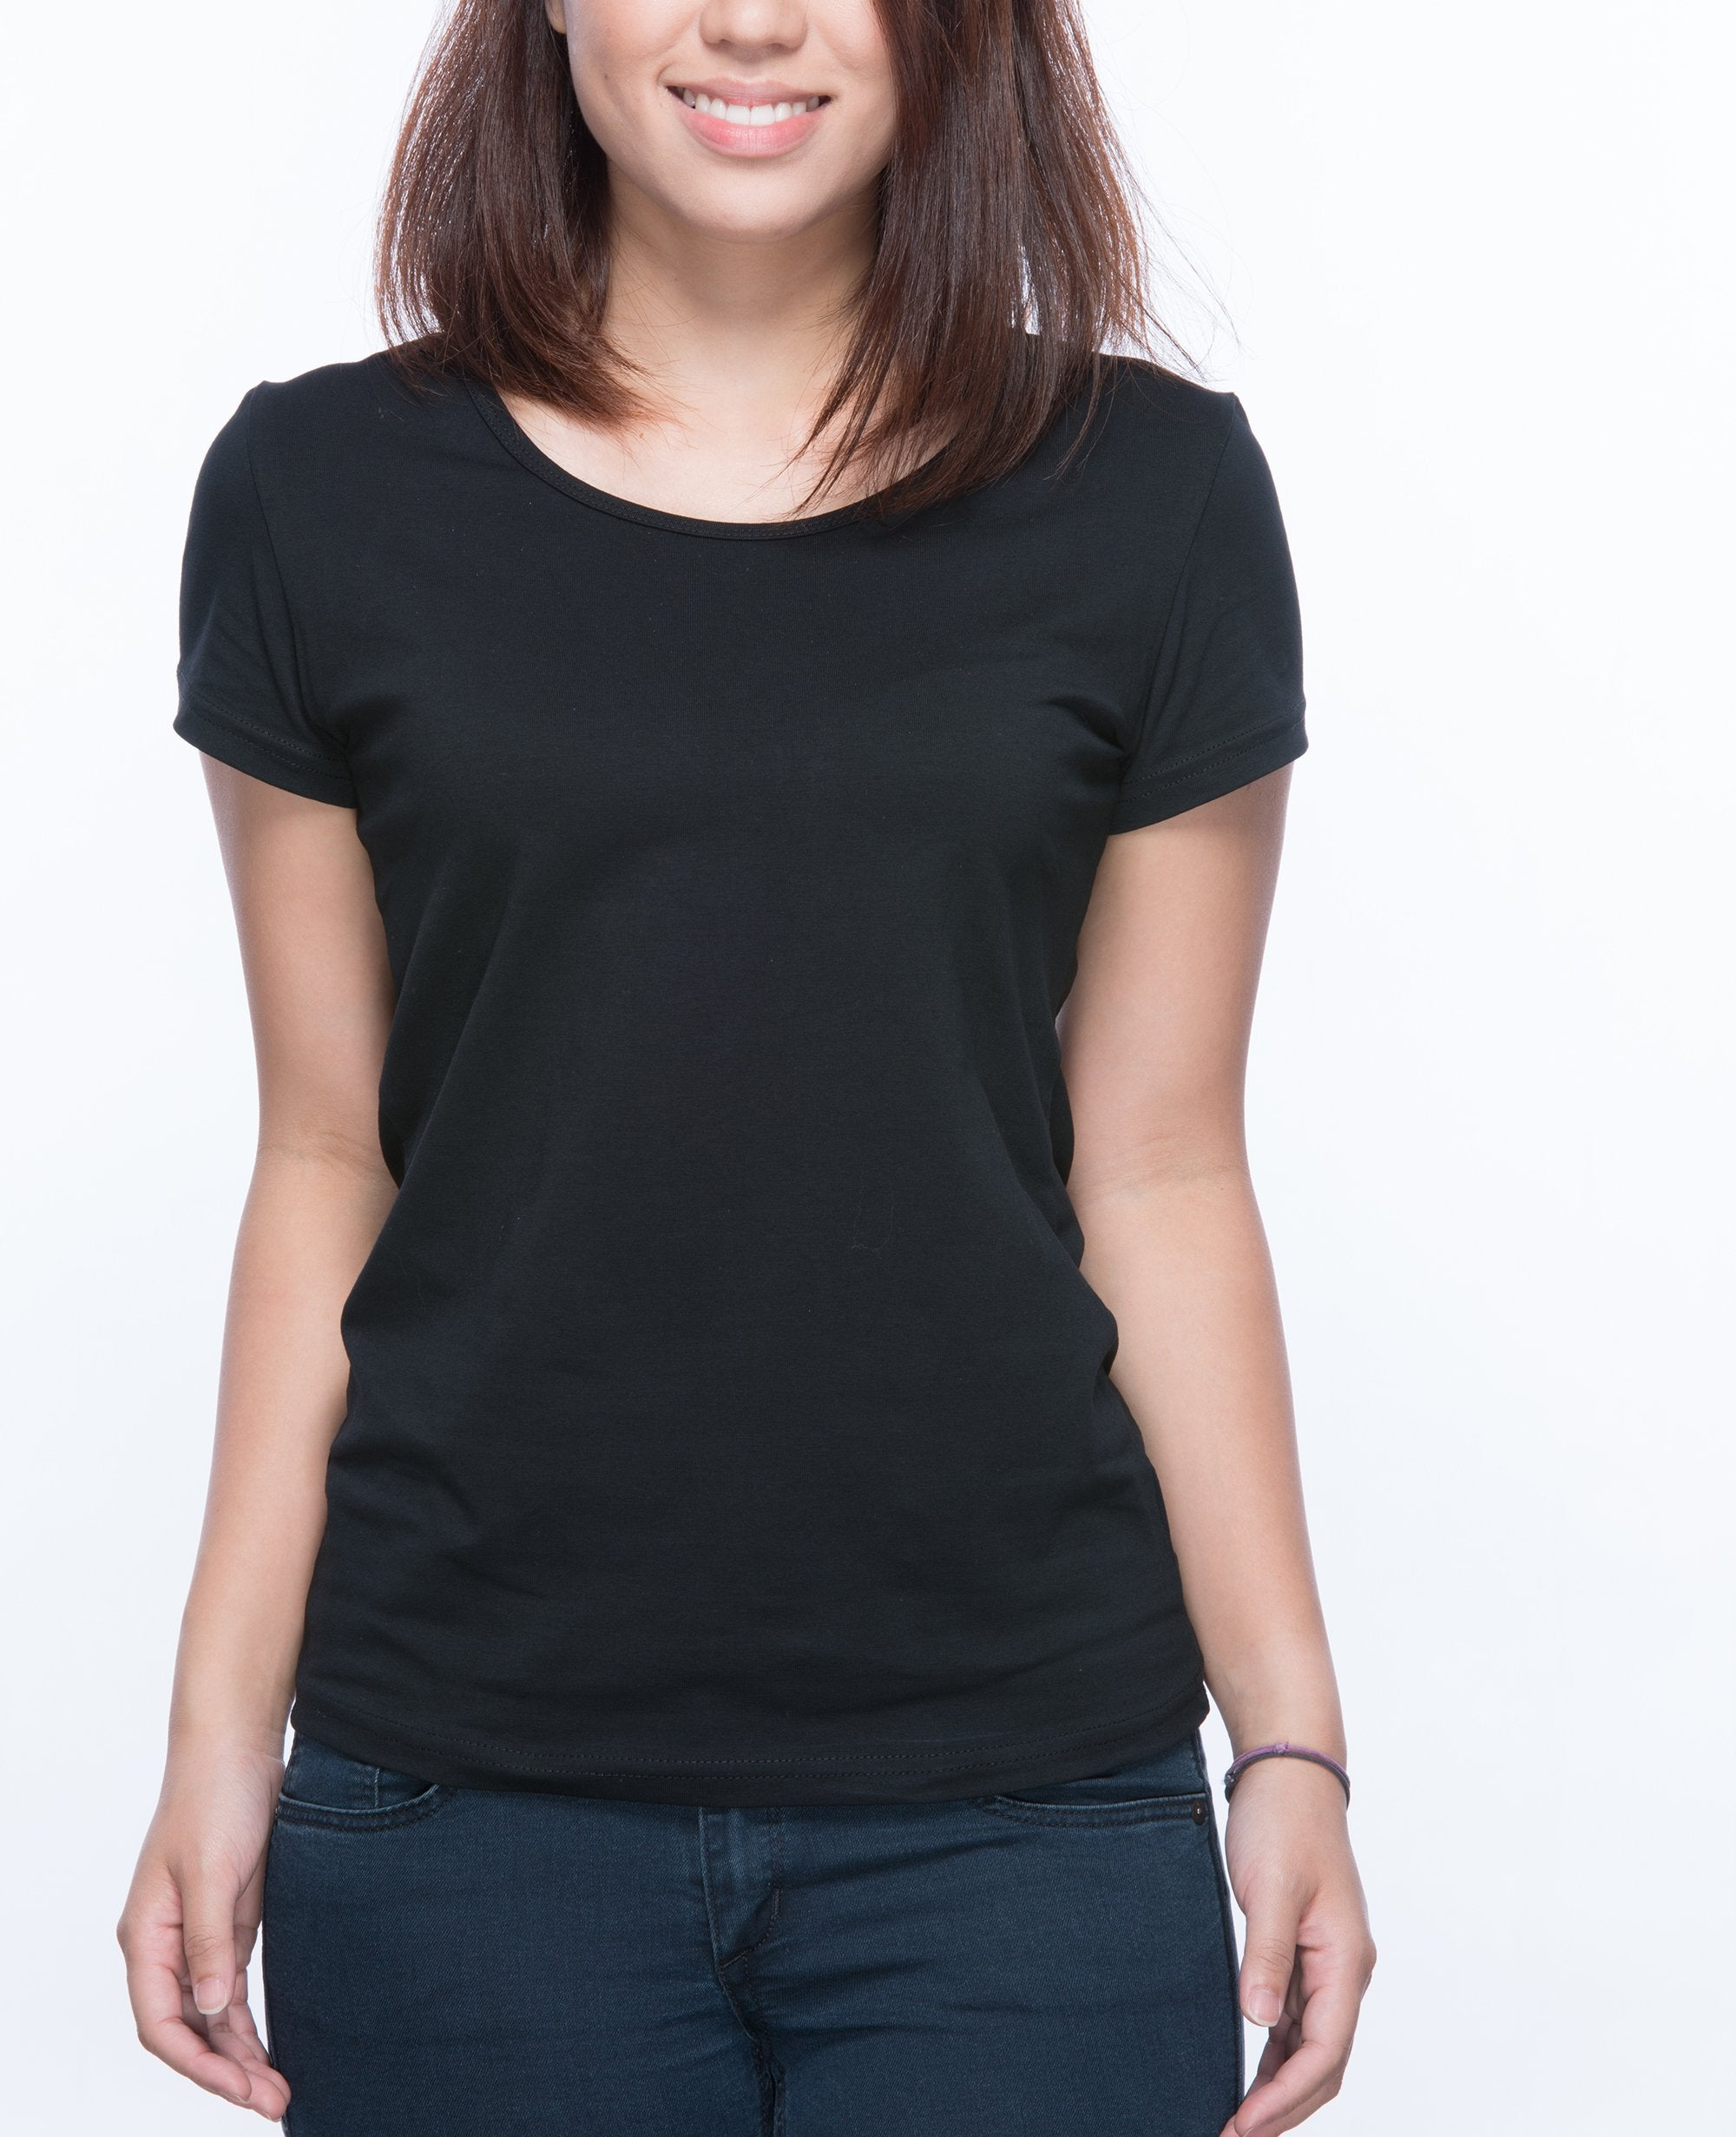 Slim fit T-shirt Women in Black - T-Shirts - BRANMA - BRANMA